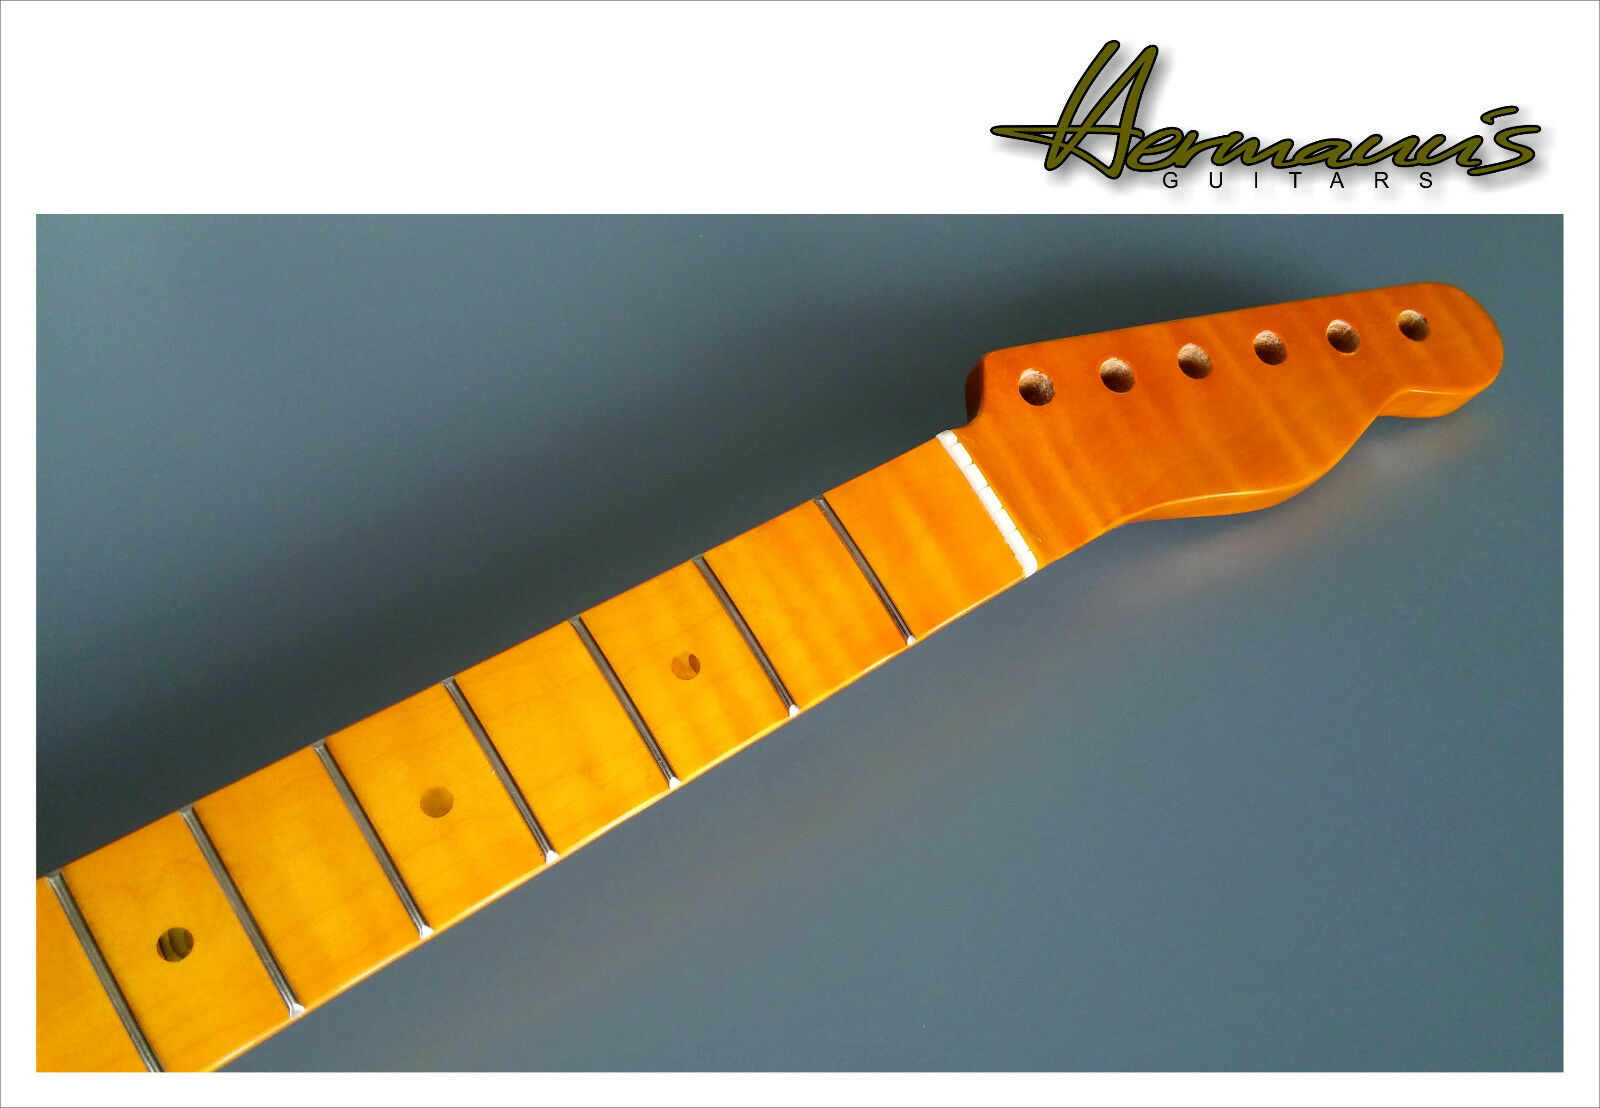 Telecaster HQ One Piece Canadian Tigerstripe Flamed Maple Neck, Vintage Finish